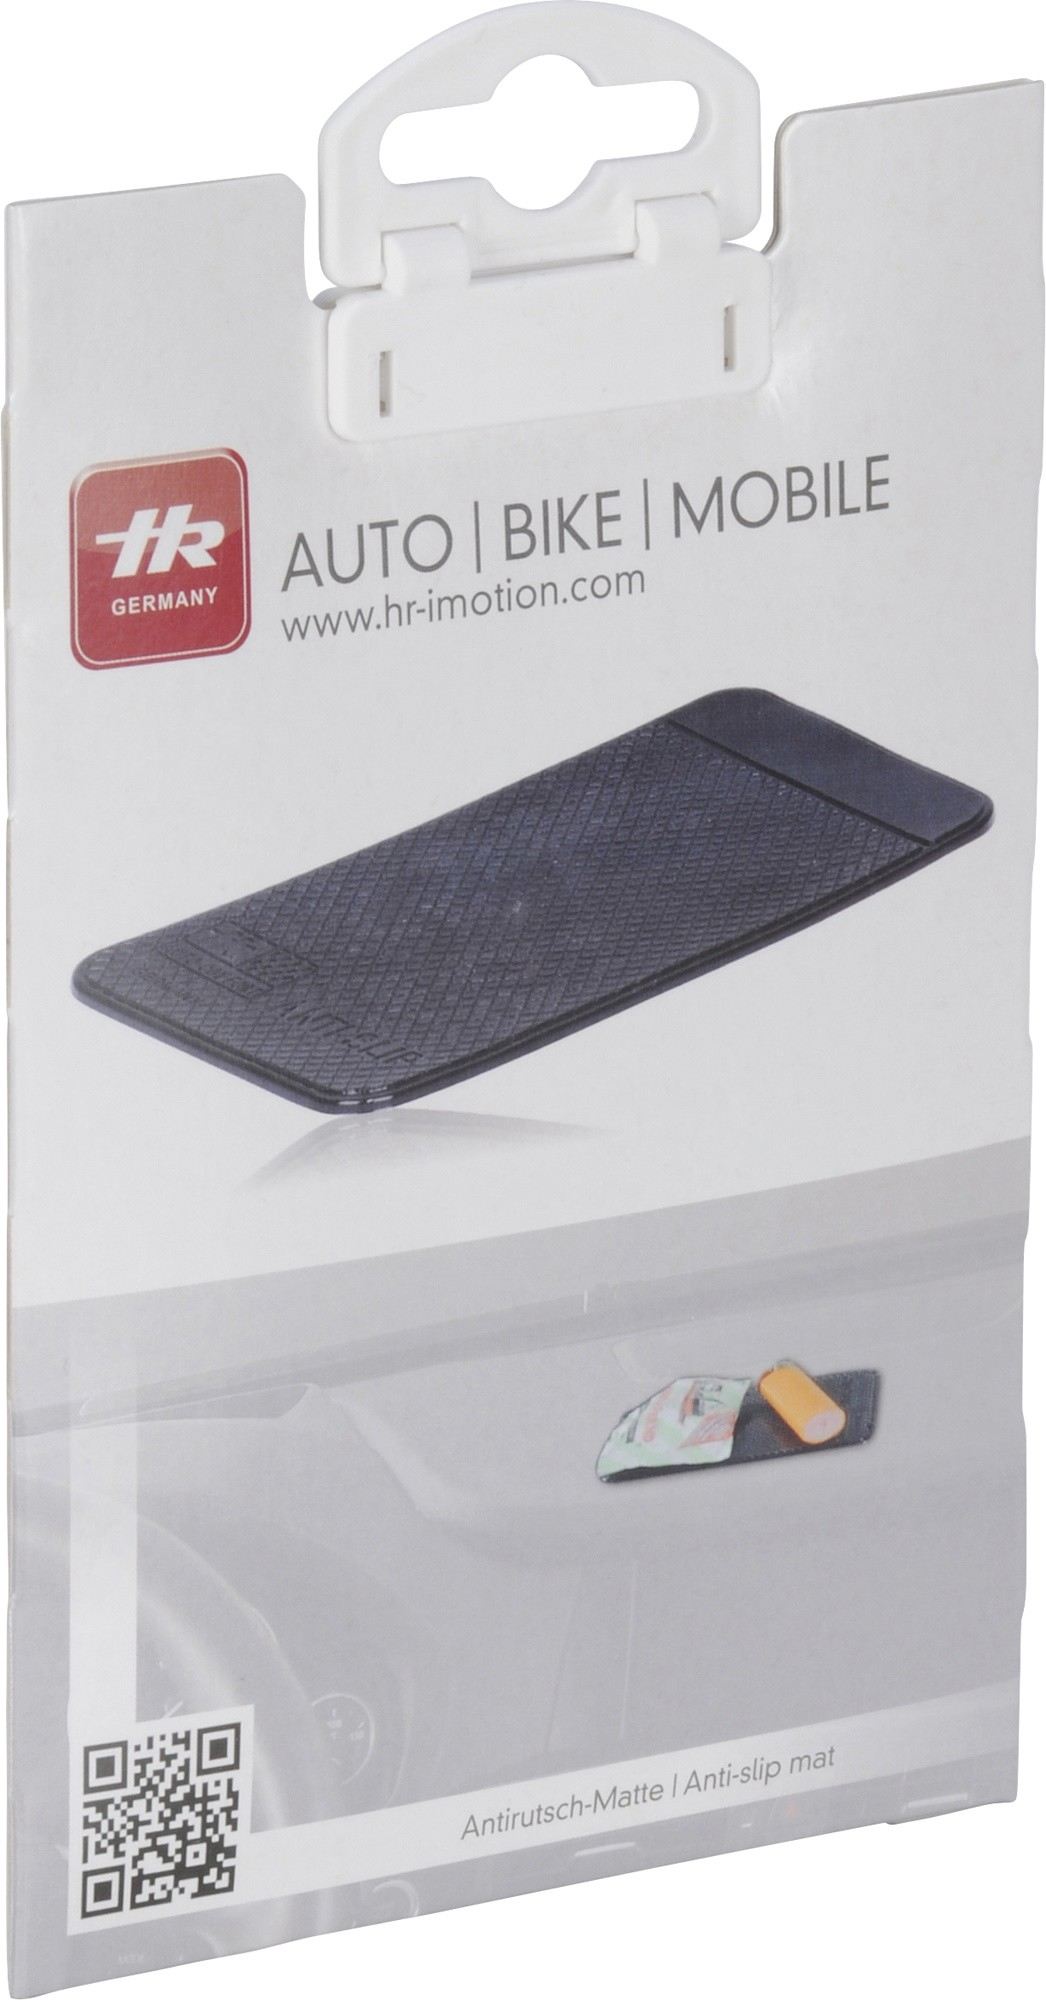 HR i-Motion Anti-slip mat - zwart